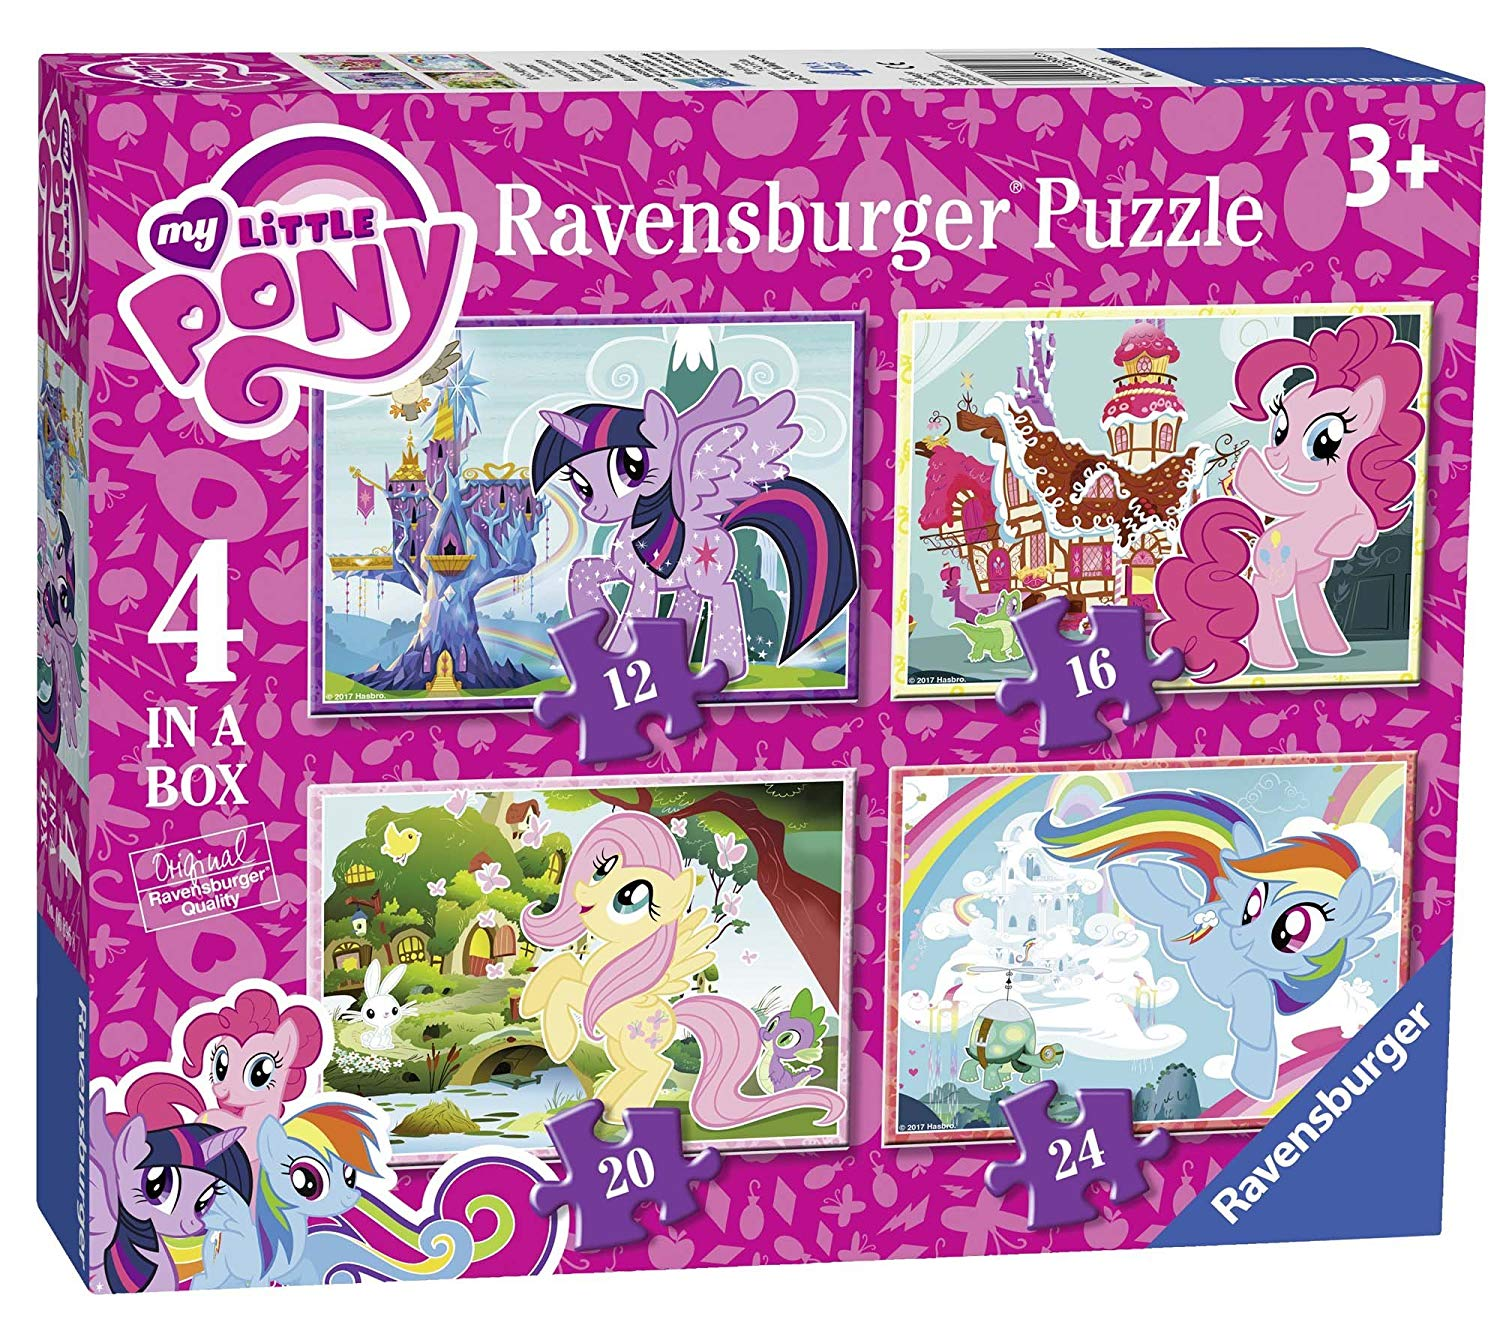 ravensburger-4-puzzles-my-little-pony-12-teile-puzzle-ravensburger-06896